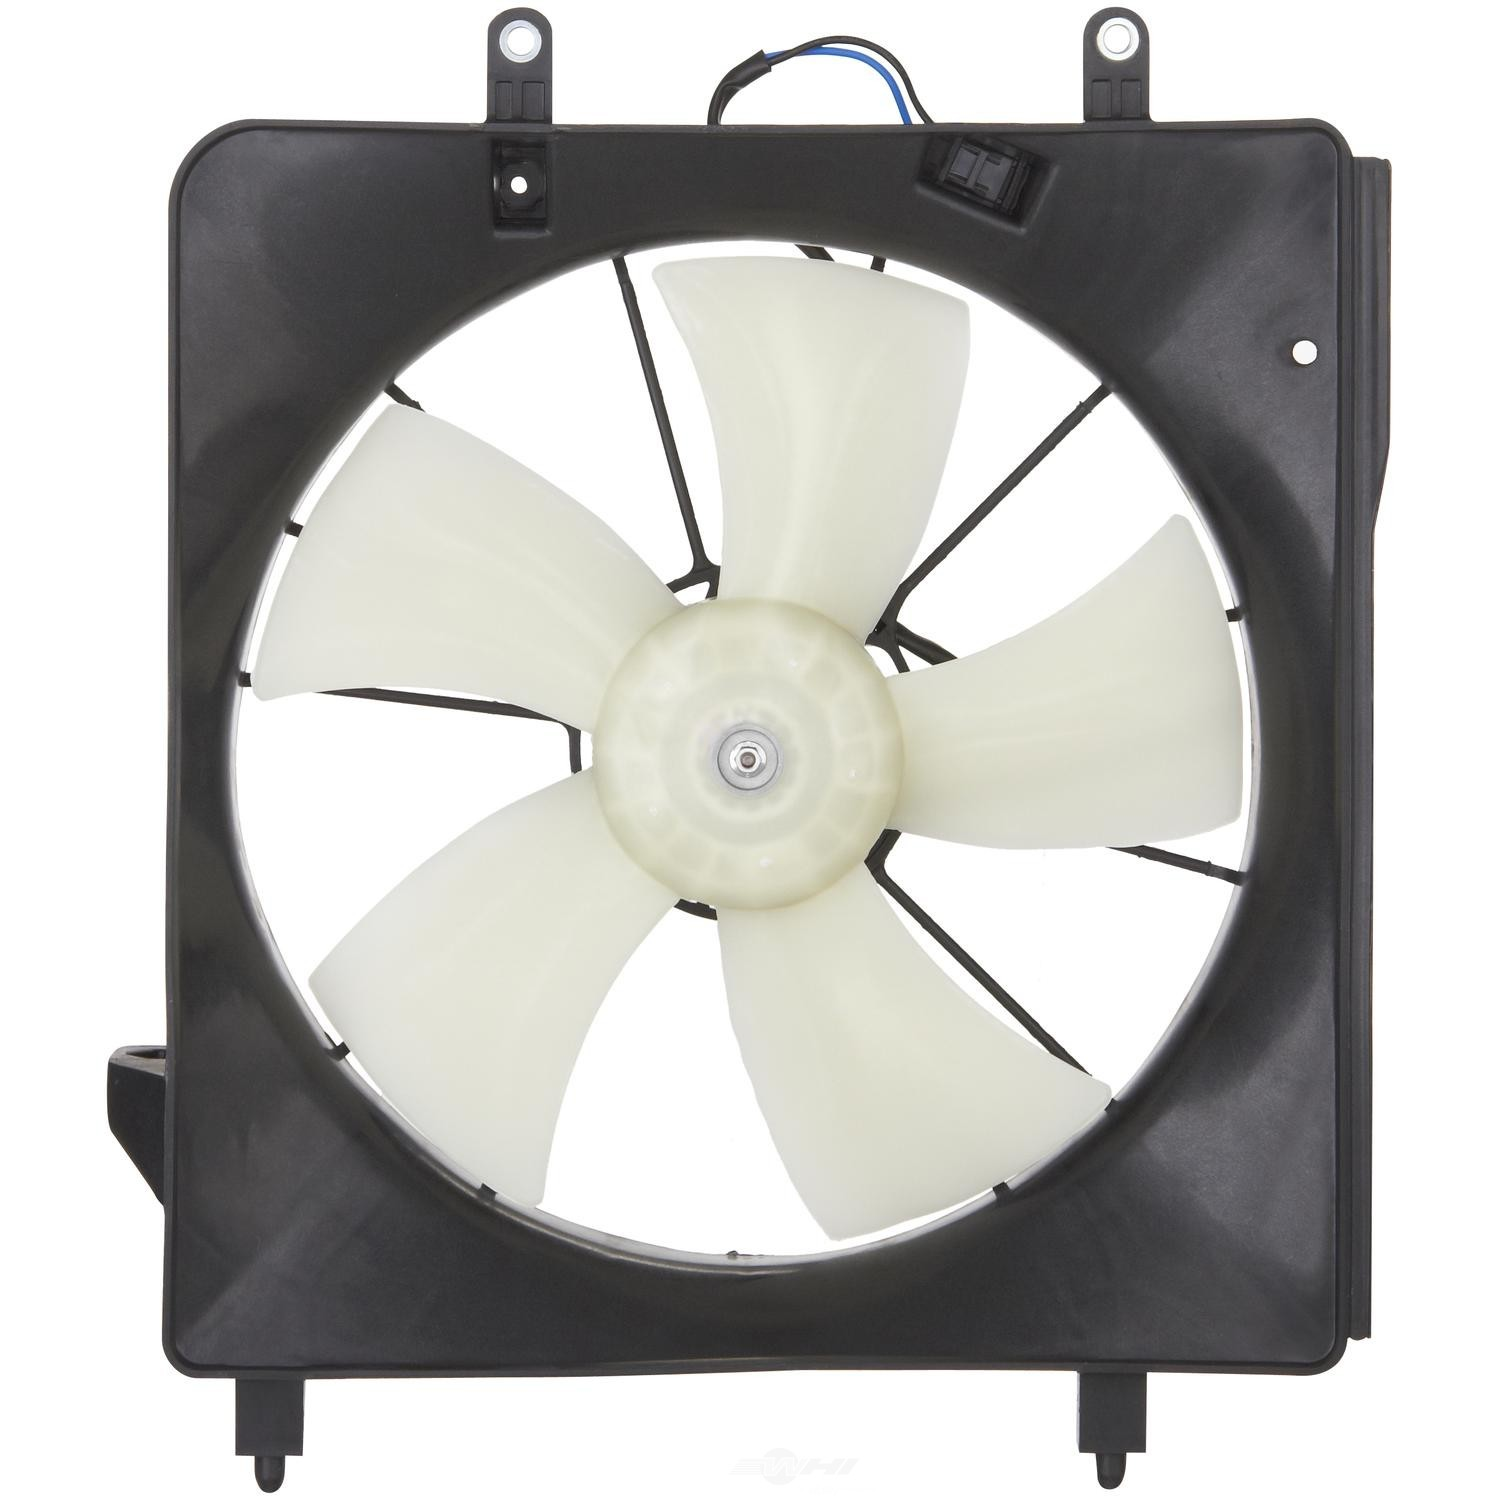 SPECTRA PREMIUM IND., INC. - Engine Cooling Fan Assembly - SPC CF18033